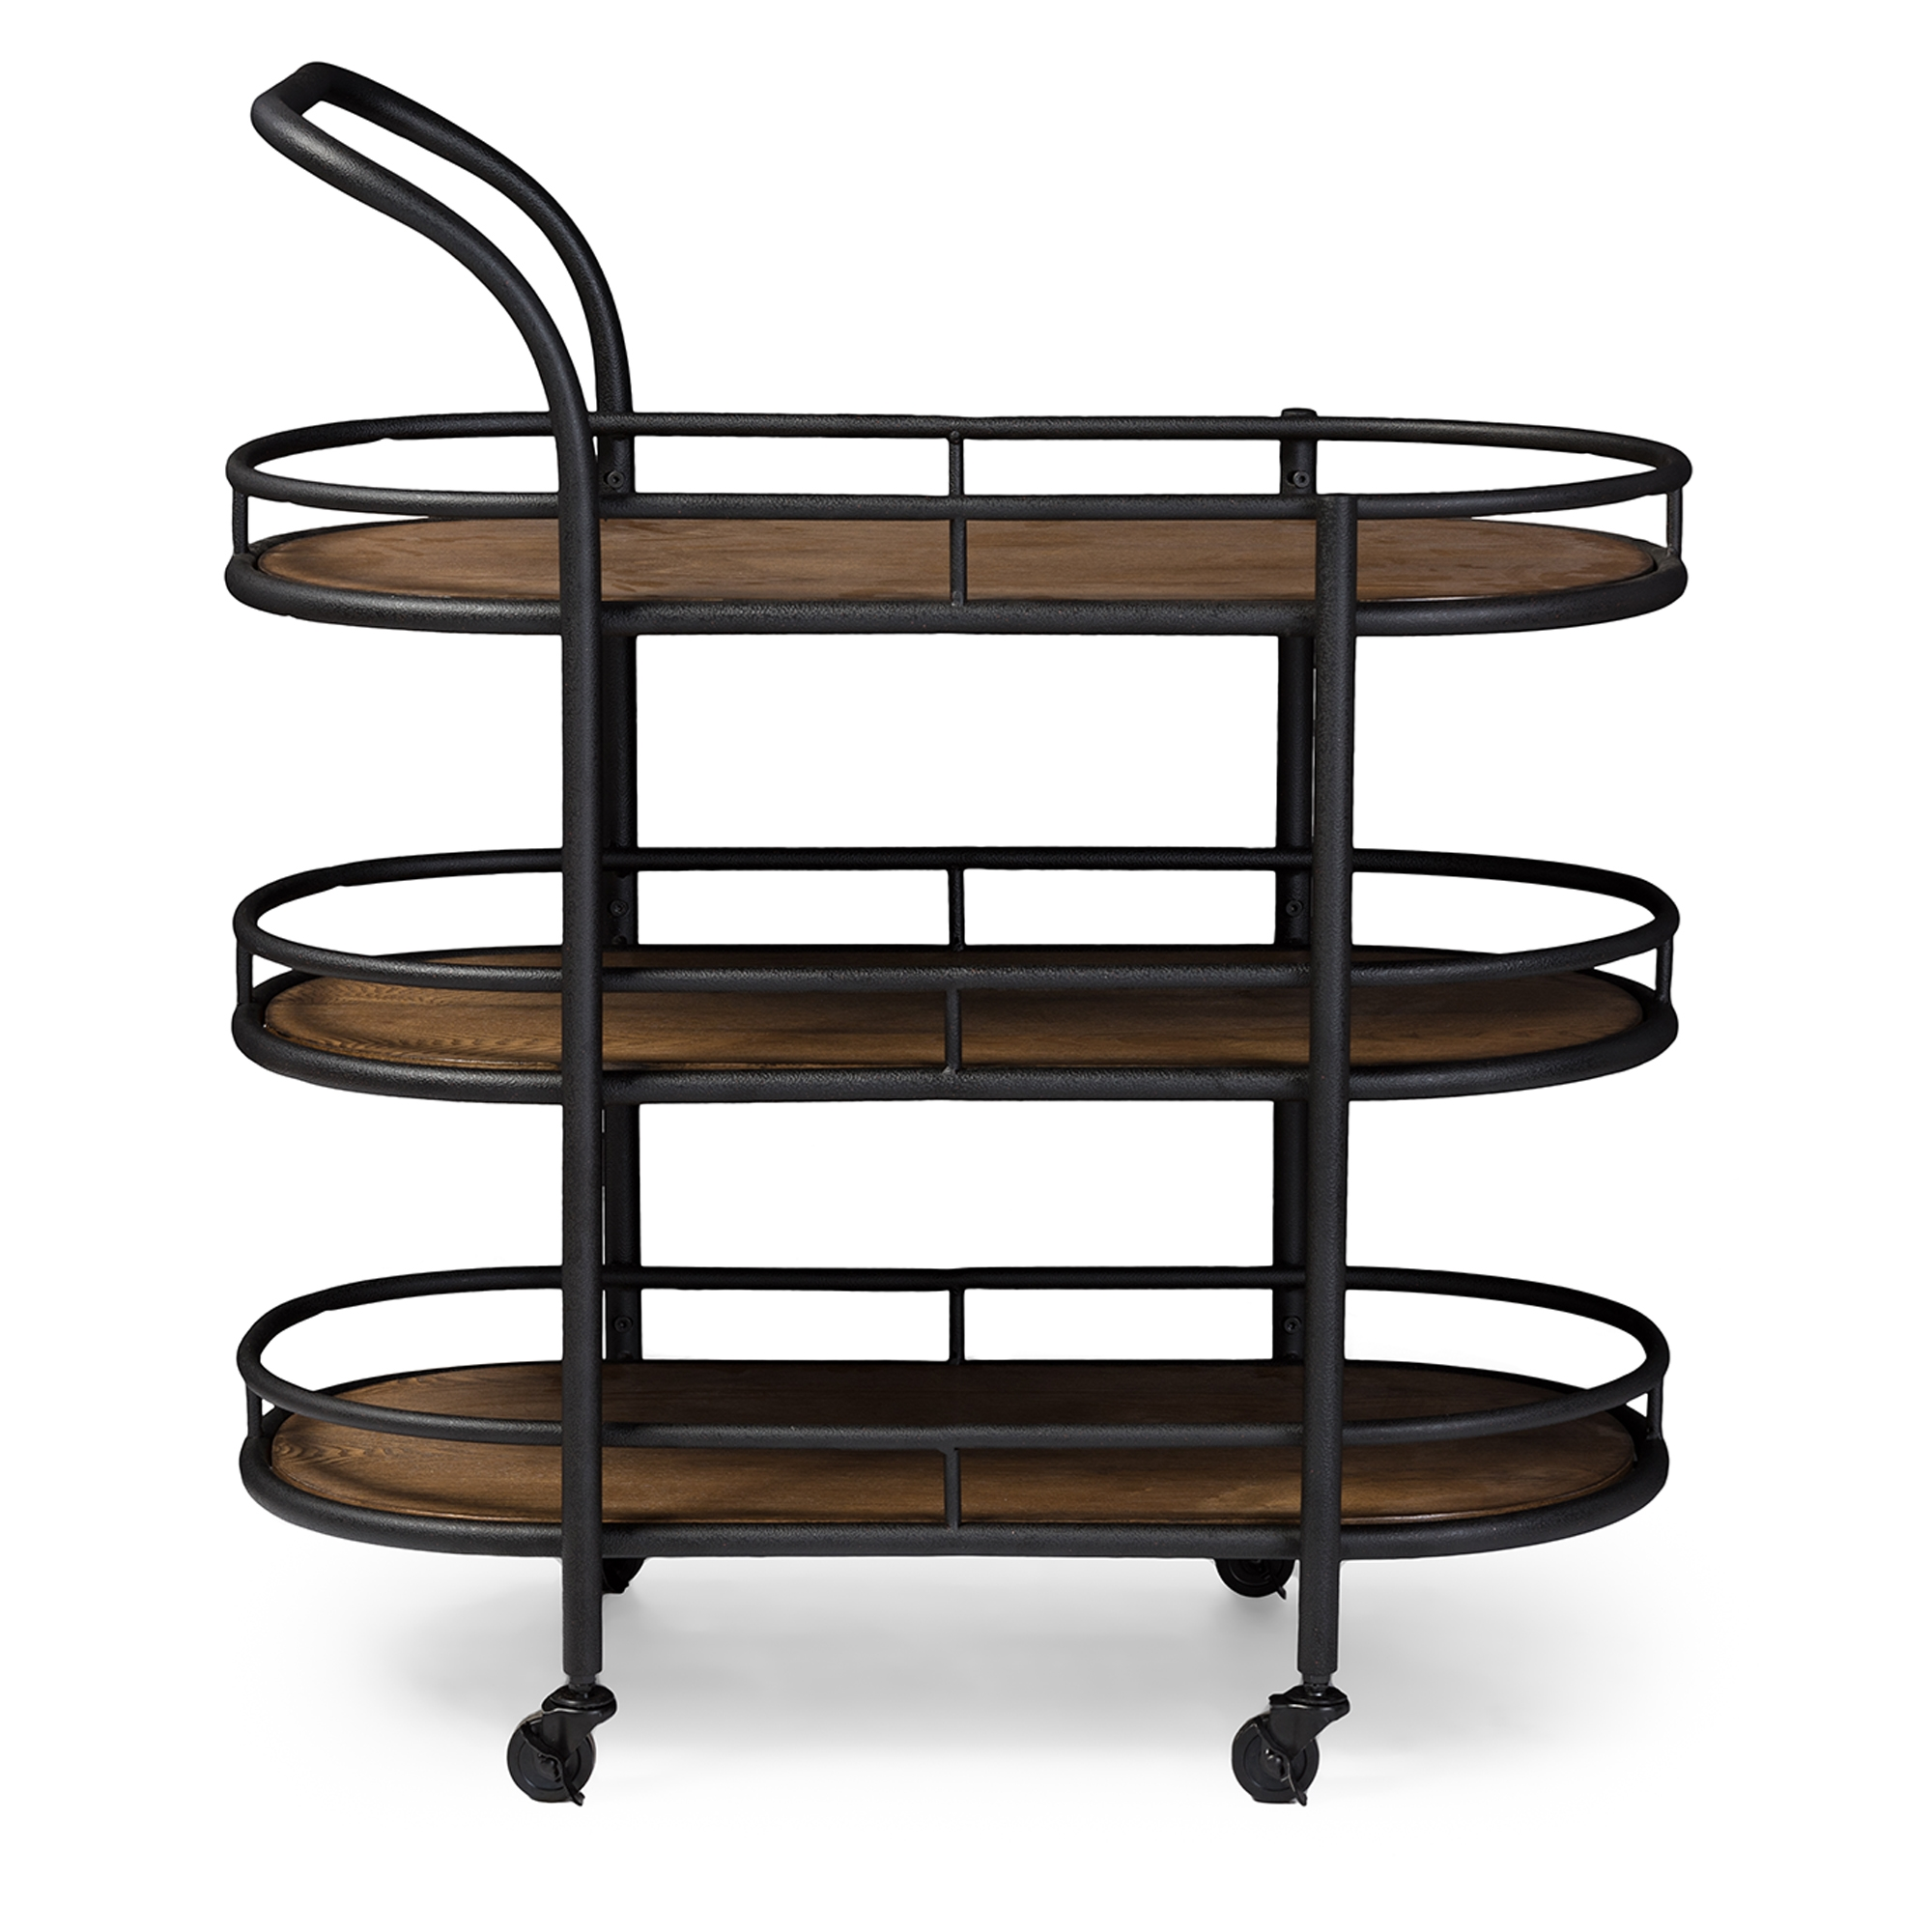 Baxton Studio Karlin Rustic Industrial Style Antique Black Textured Finish  Metal Distressed Wood Mobile Kitchen Bar